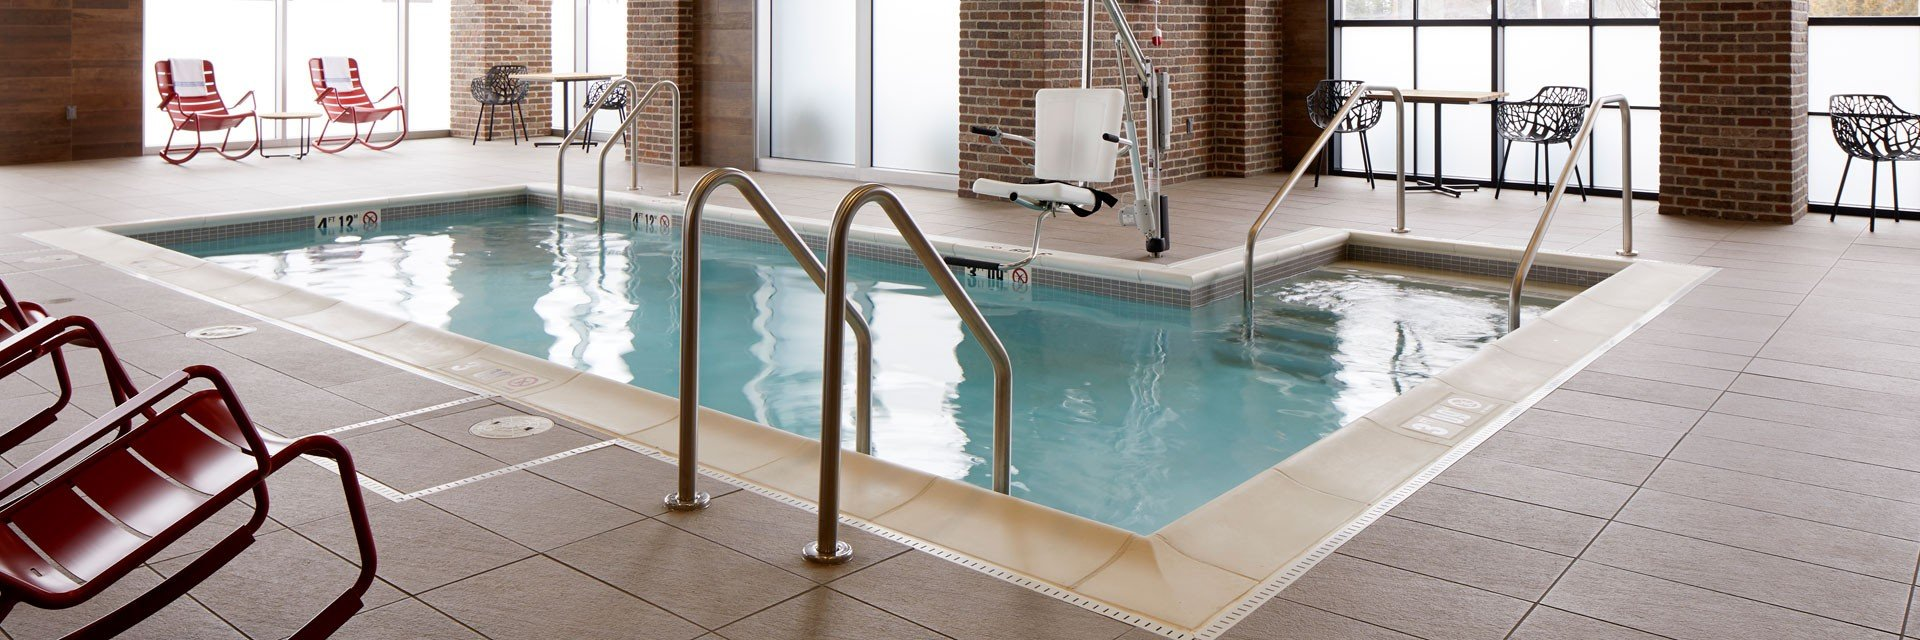 Archer Hotel Burlington pool with chairs